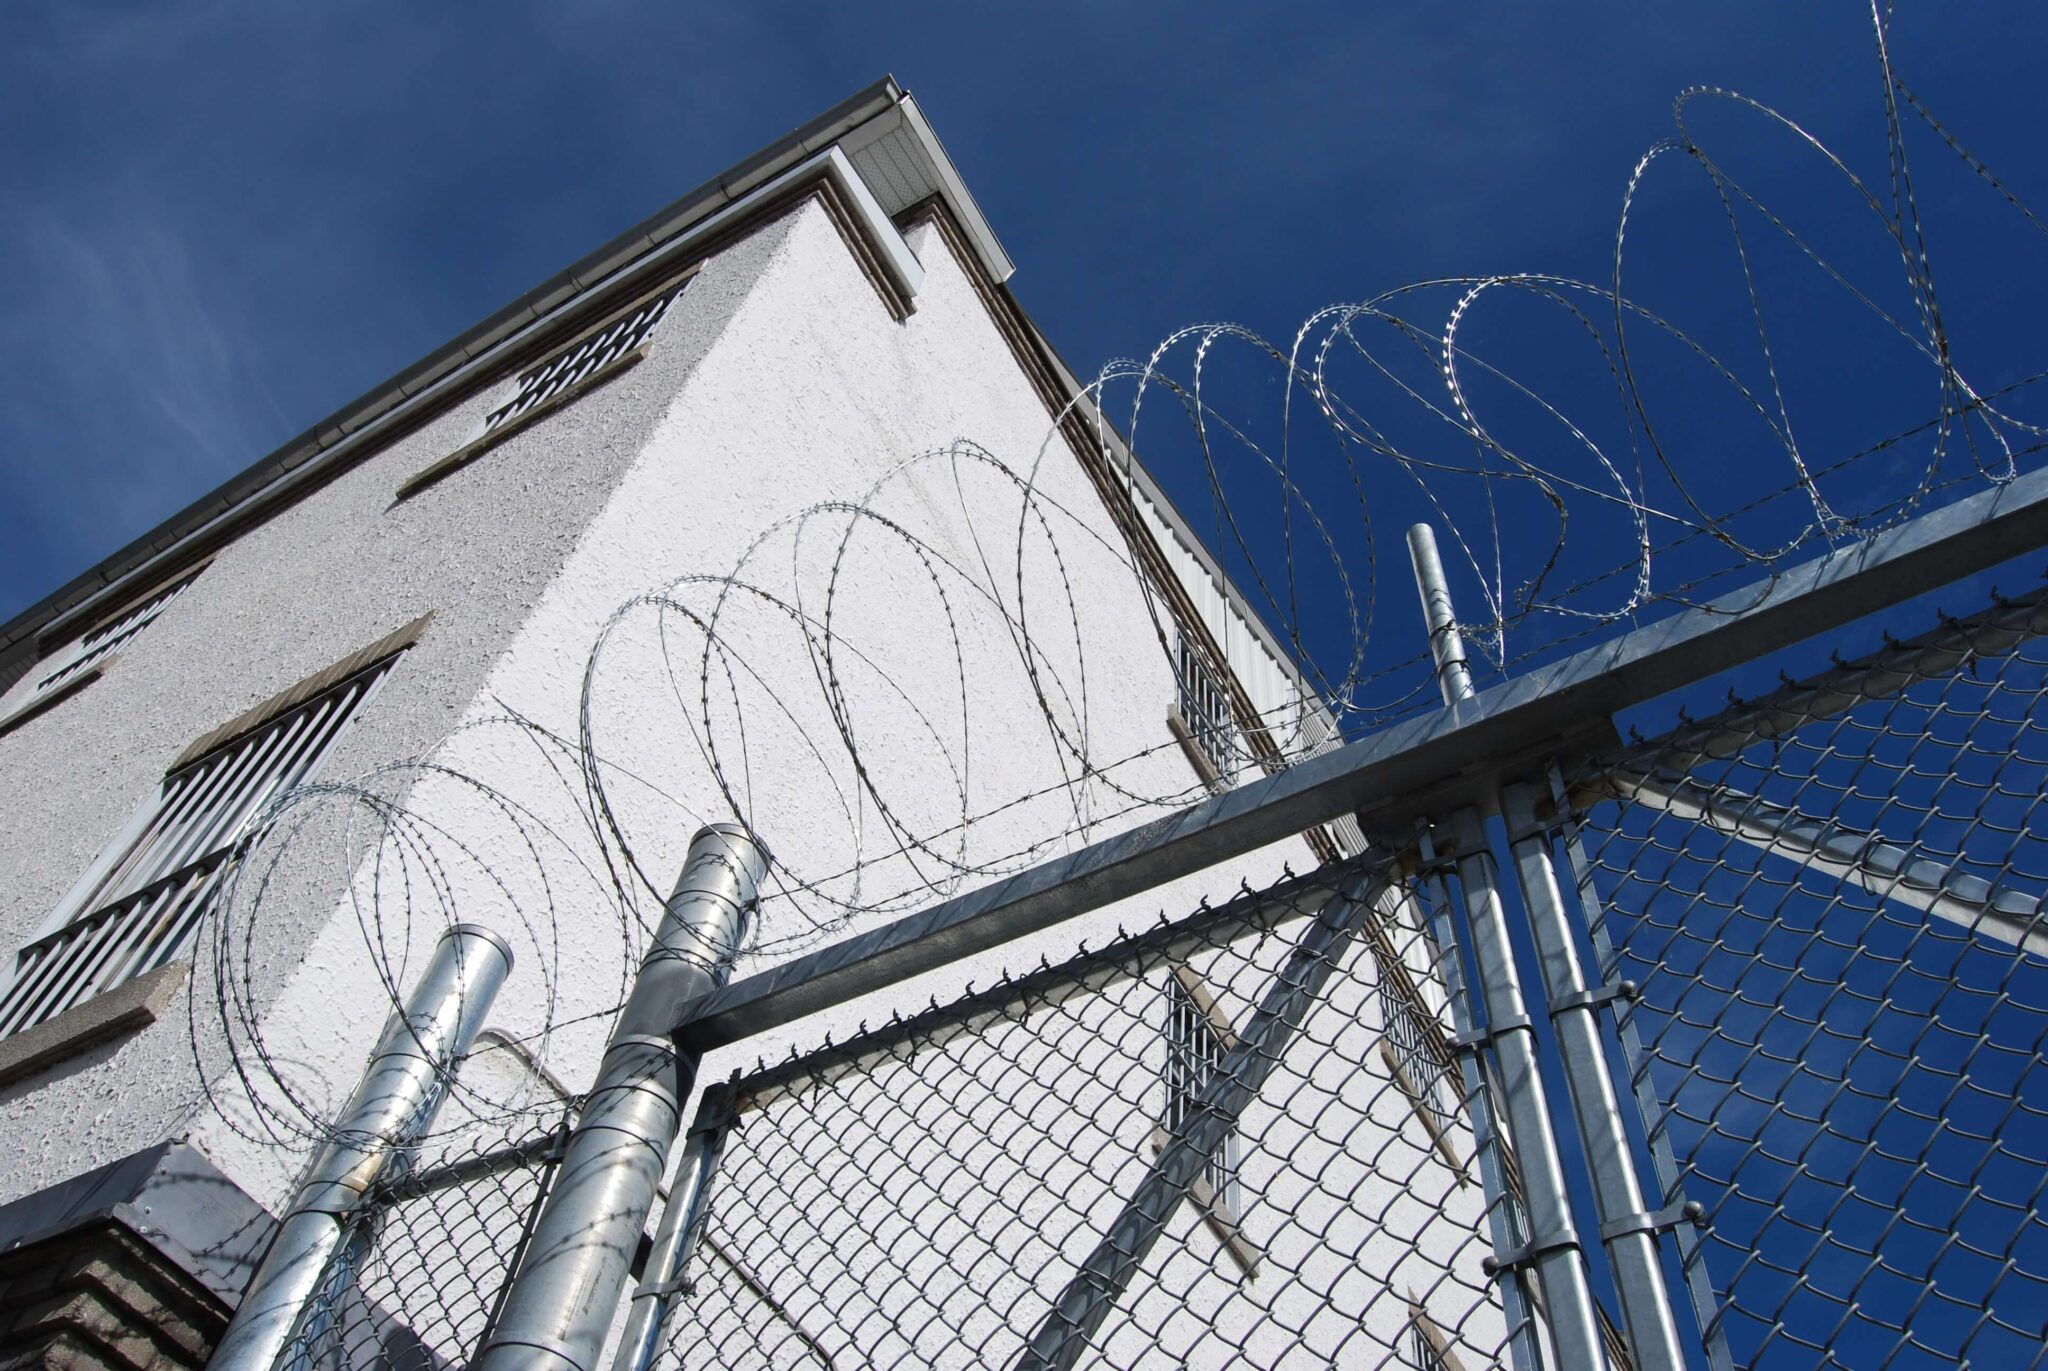 A barbed wire fence in front of a jail